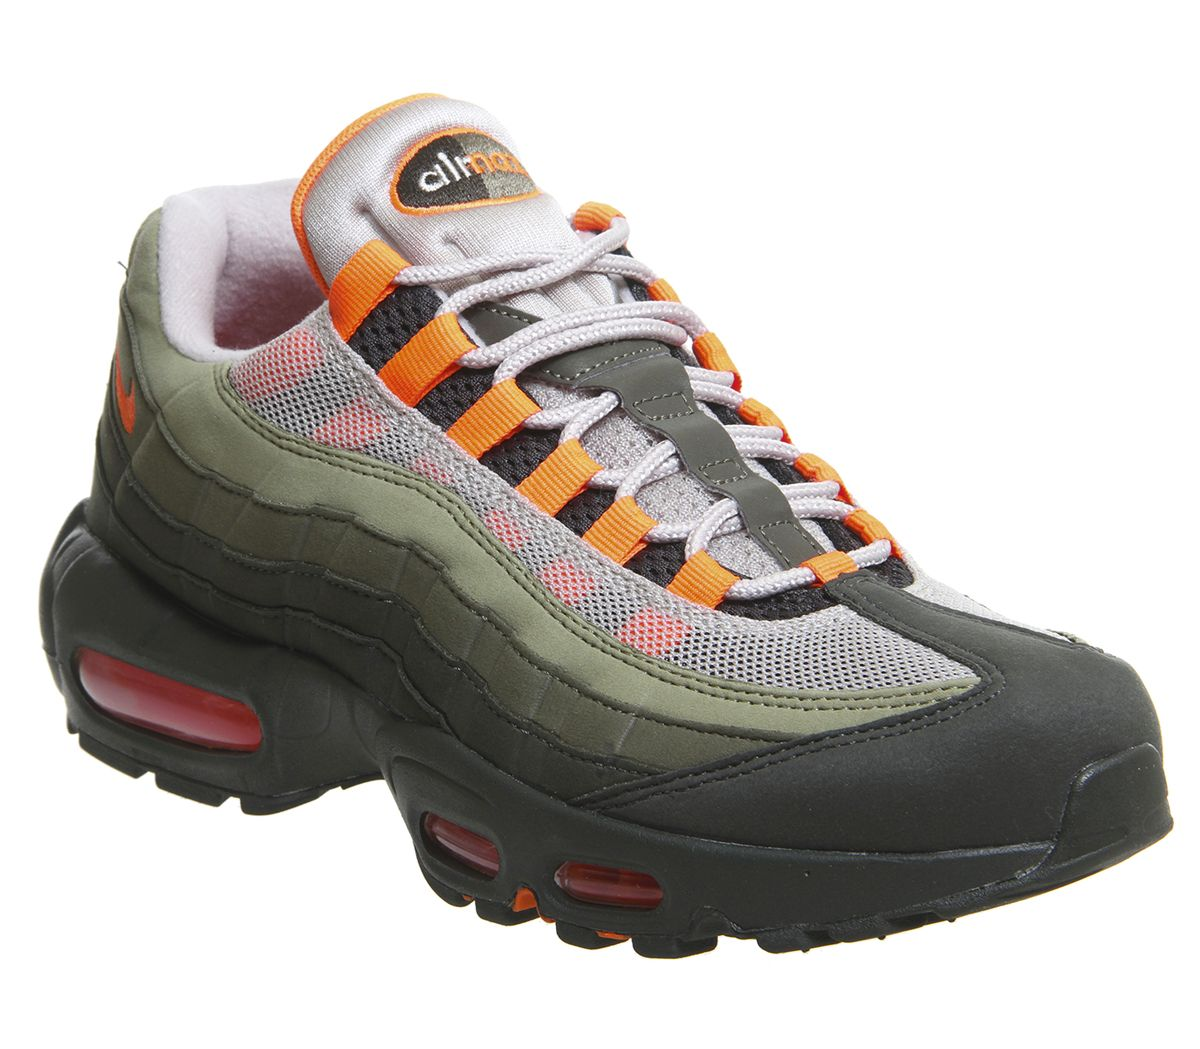 a15d9b1d9d Nike Air Max 95 Trainers String Total Orange Medium Olive Khaki ...